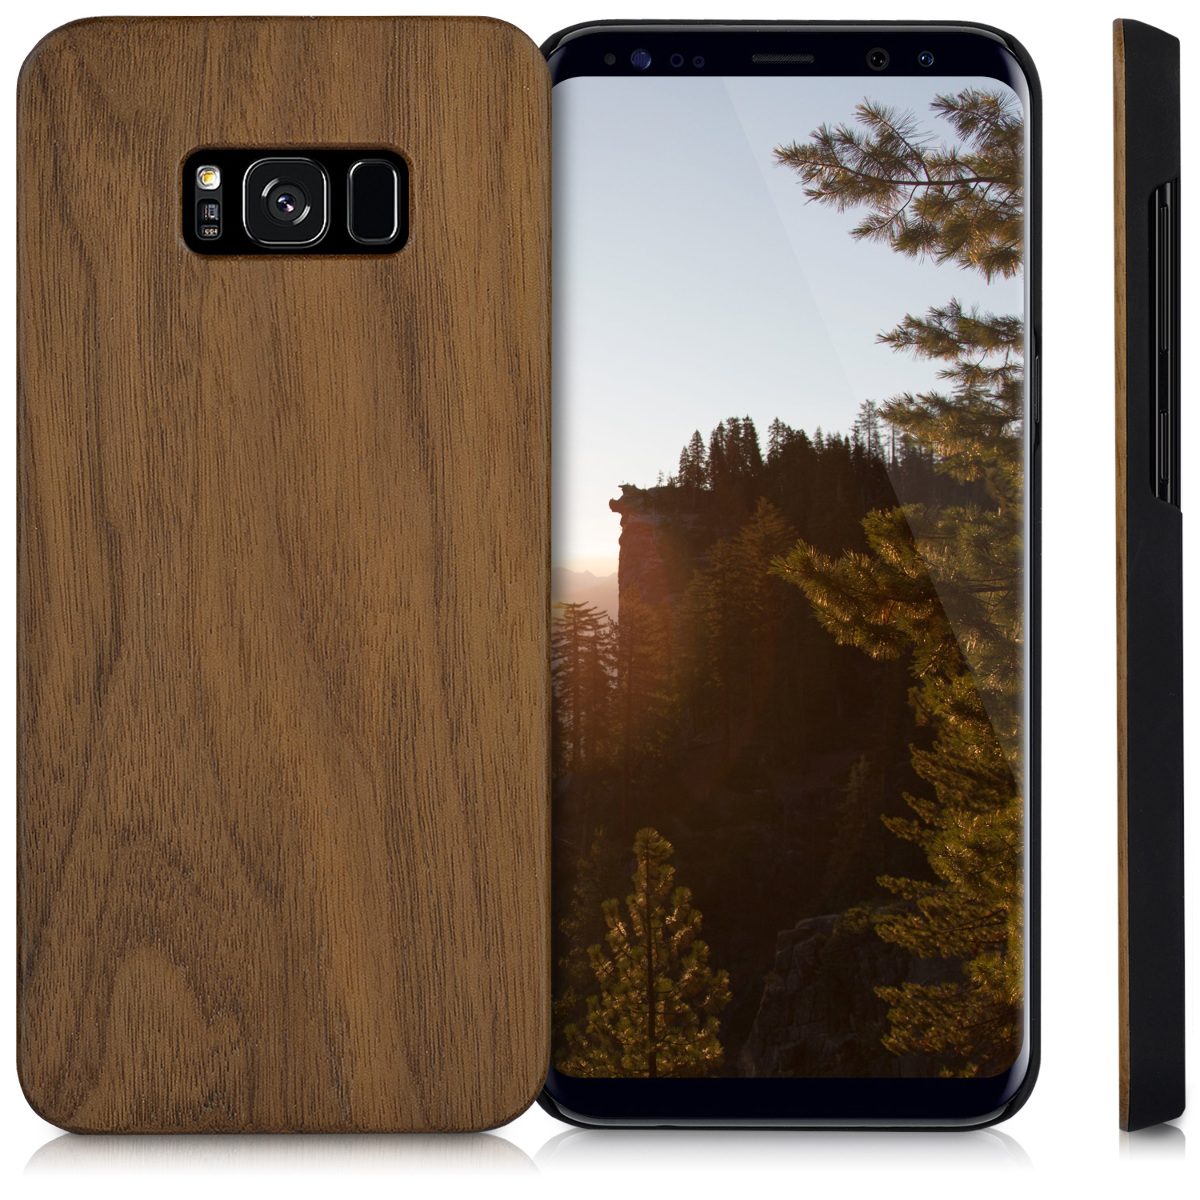 holz case f r samsung galaxy s8 plus walnussholz. Black Bedroom Furniture Sets. Home Design Ideas